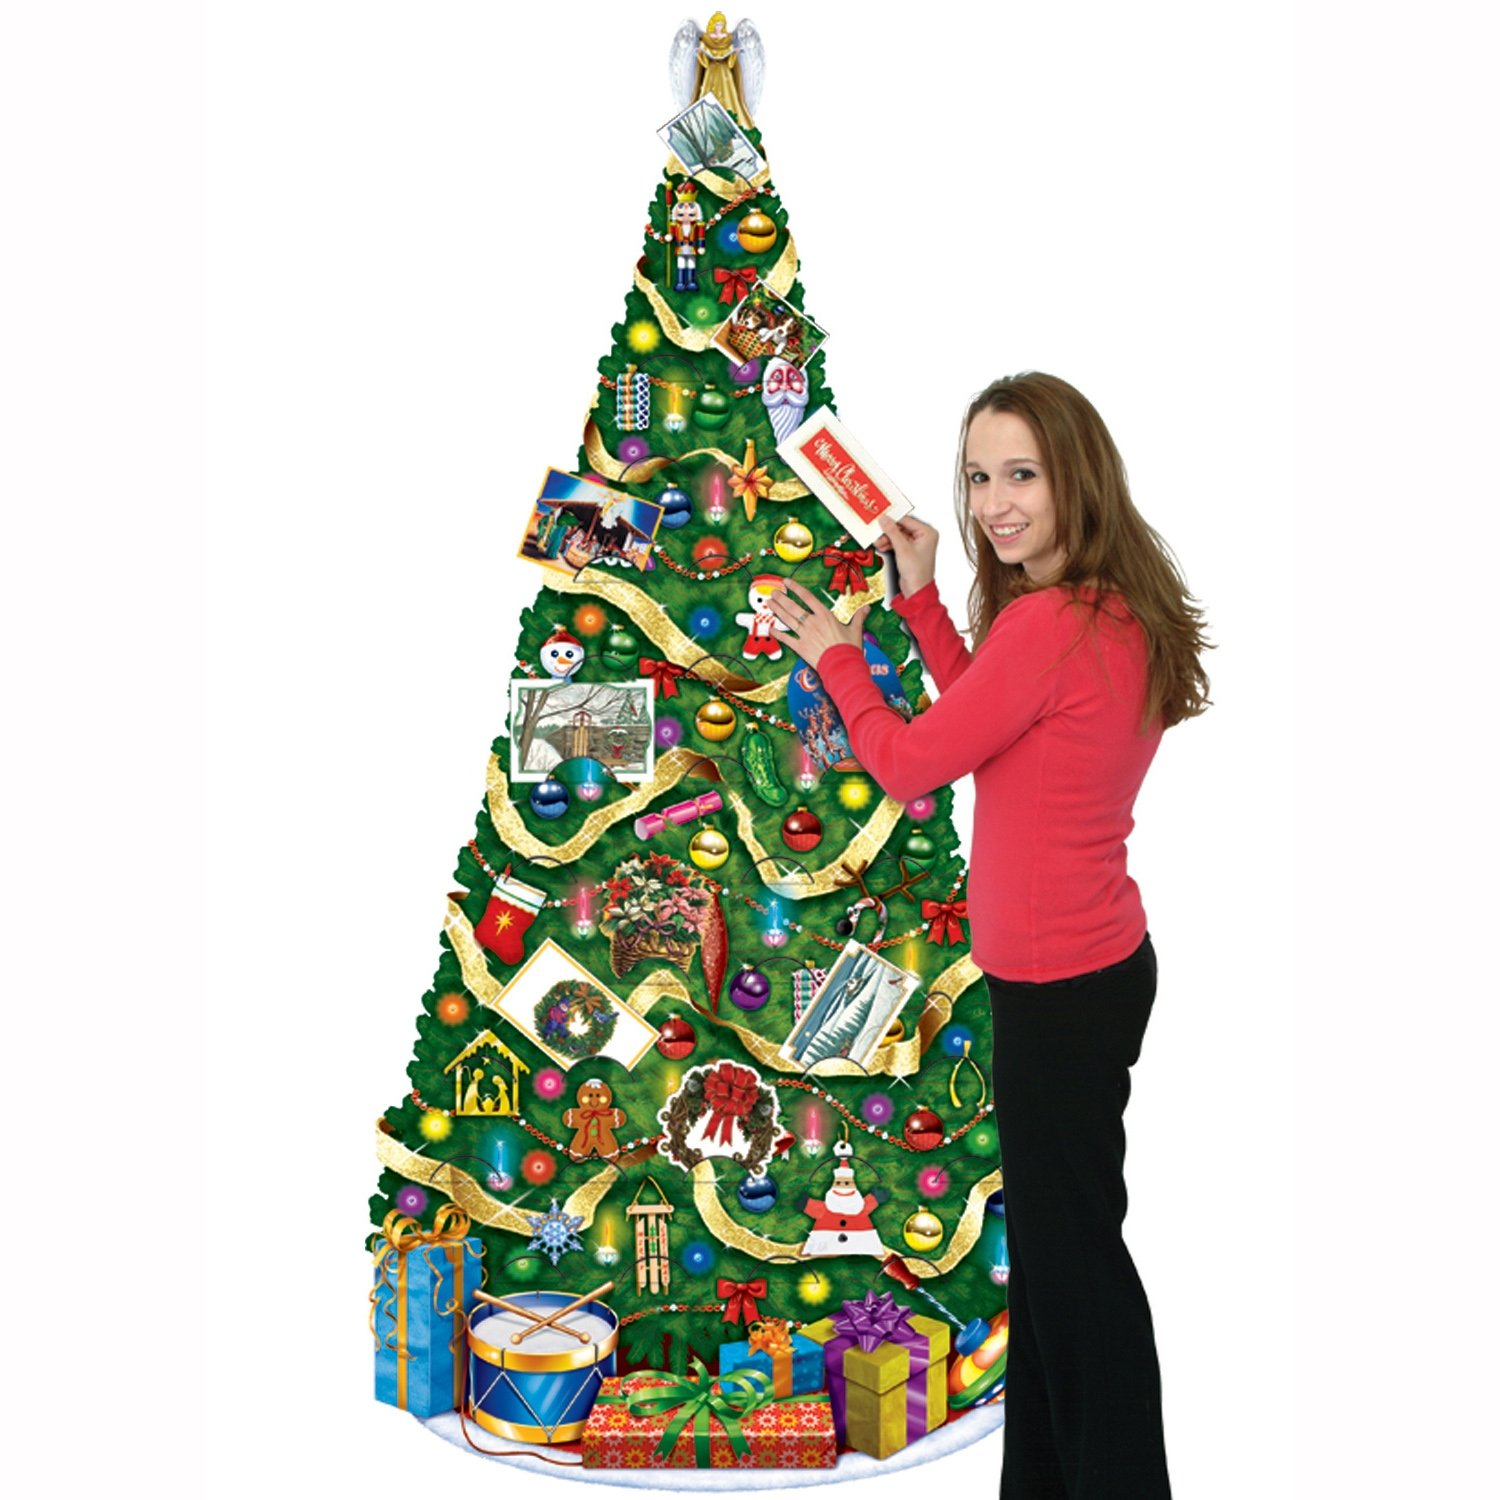 amazoncom beistle 1 pack jointed christmas tree 6 feet party streamers kitchen dining